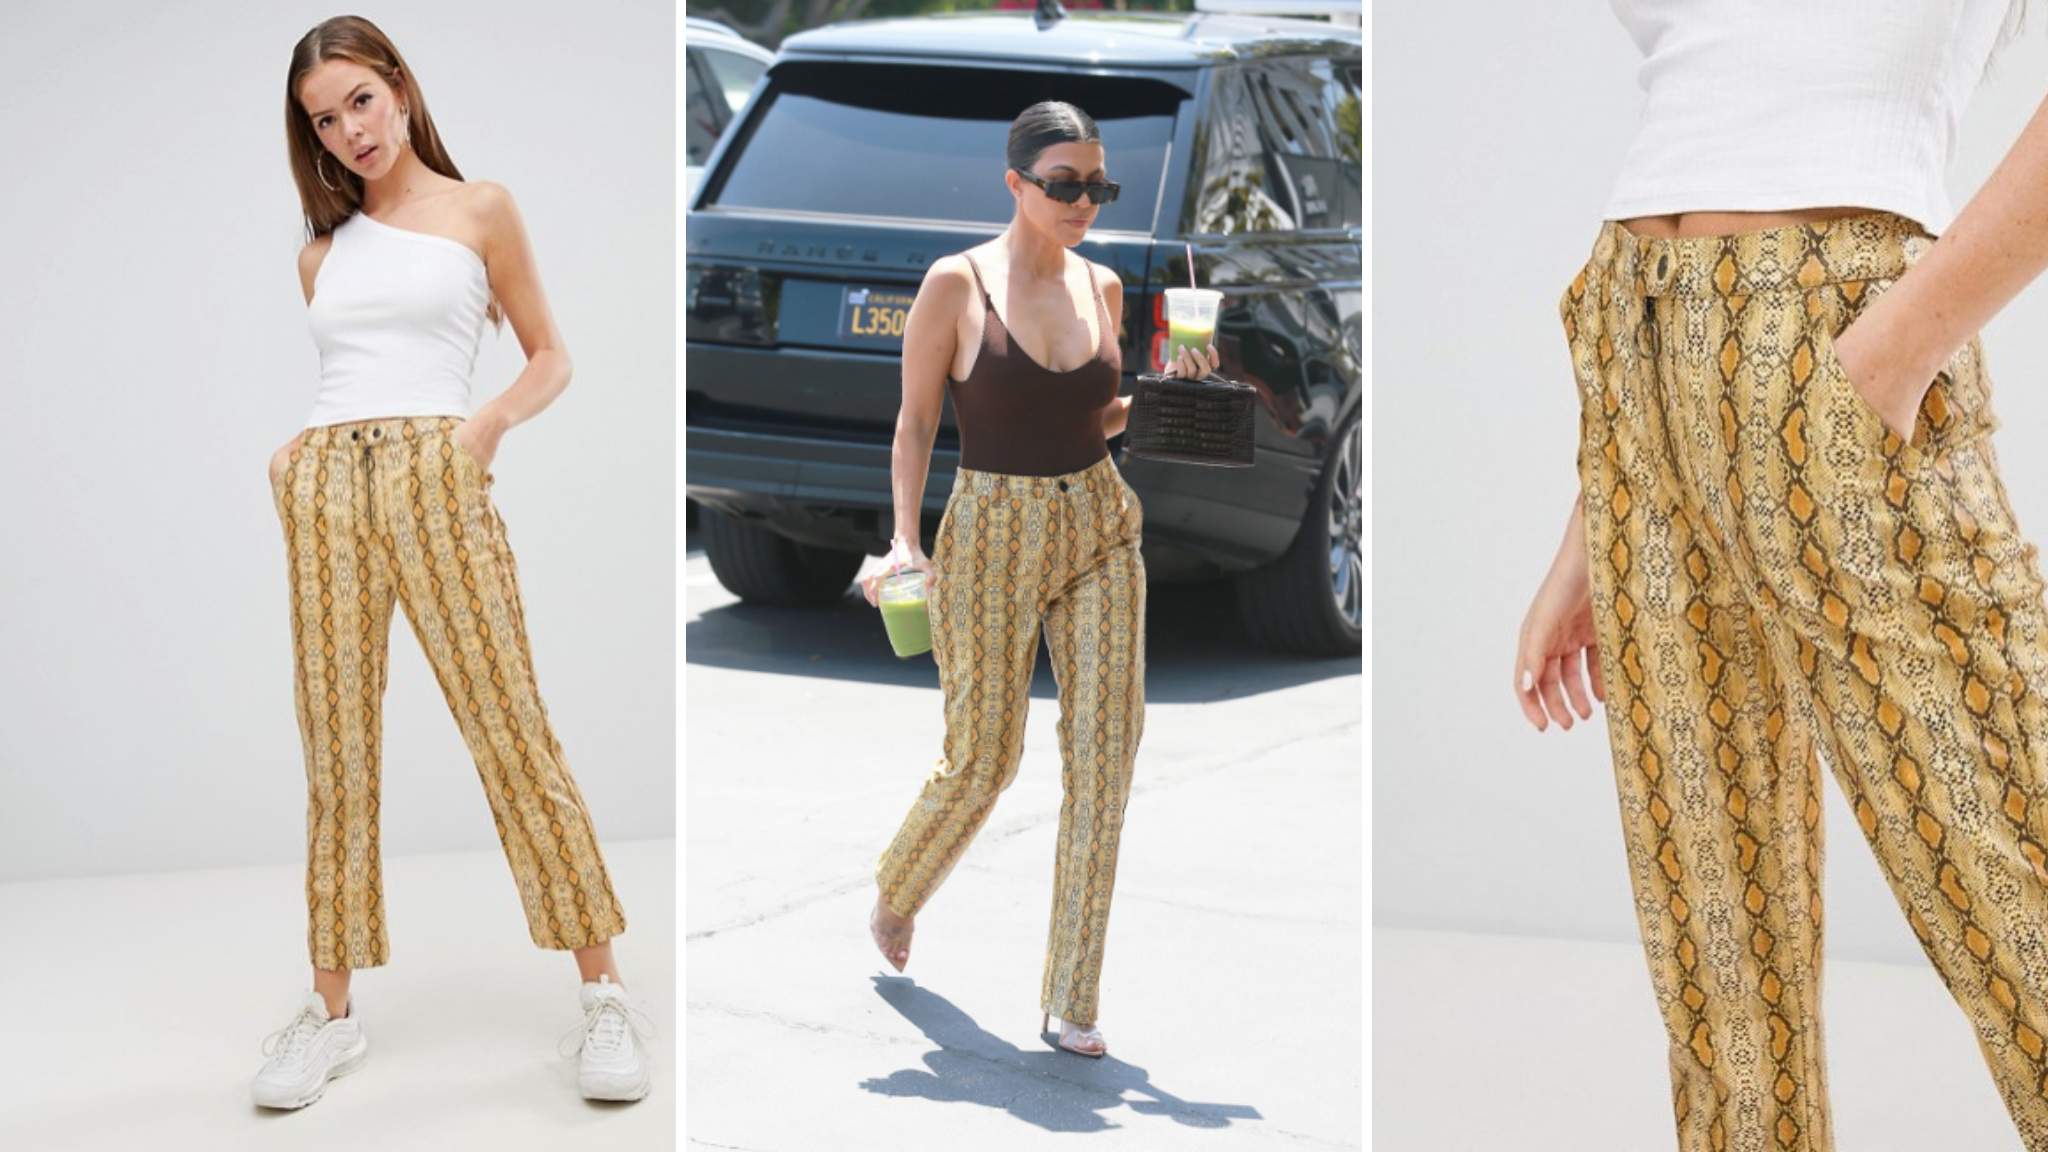 Et si on achetait le même pantalon que Kourtney Kardashian ?